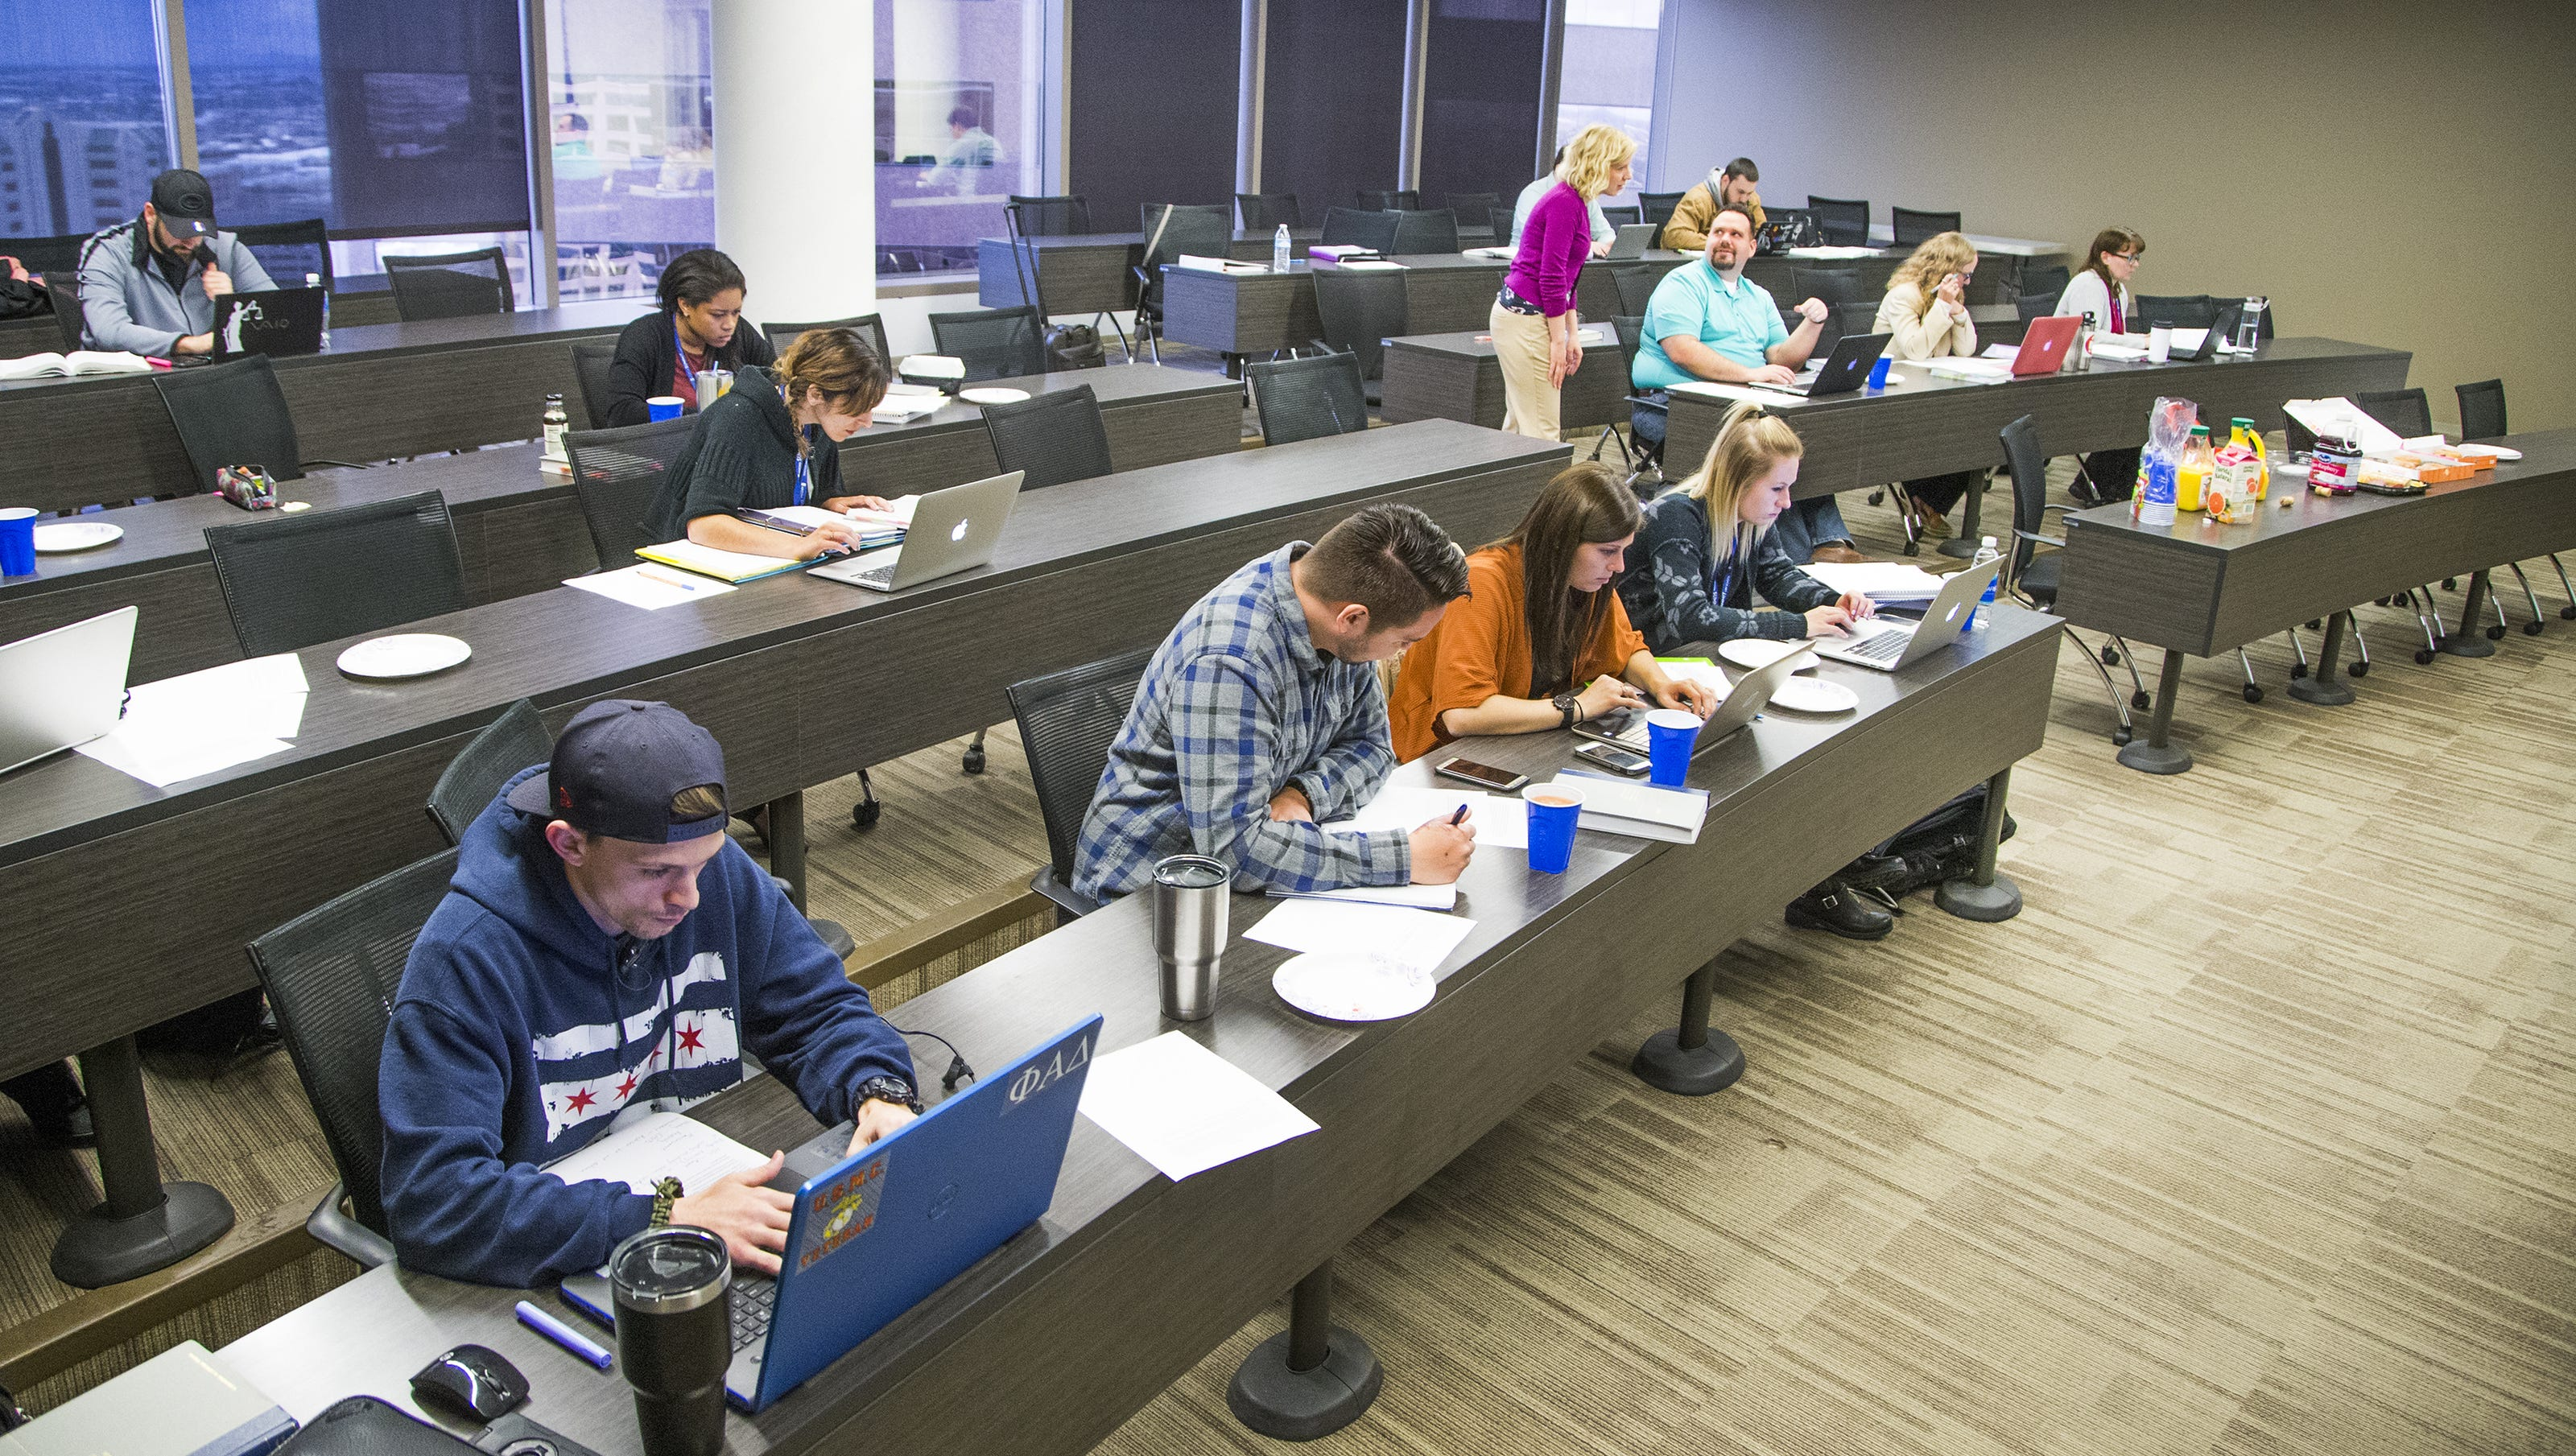 Florida bar exam canceled for in-person testing, moves to online